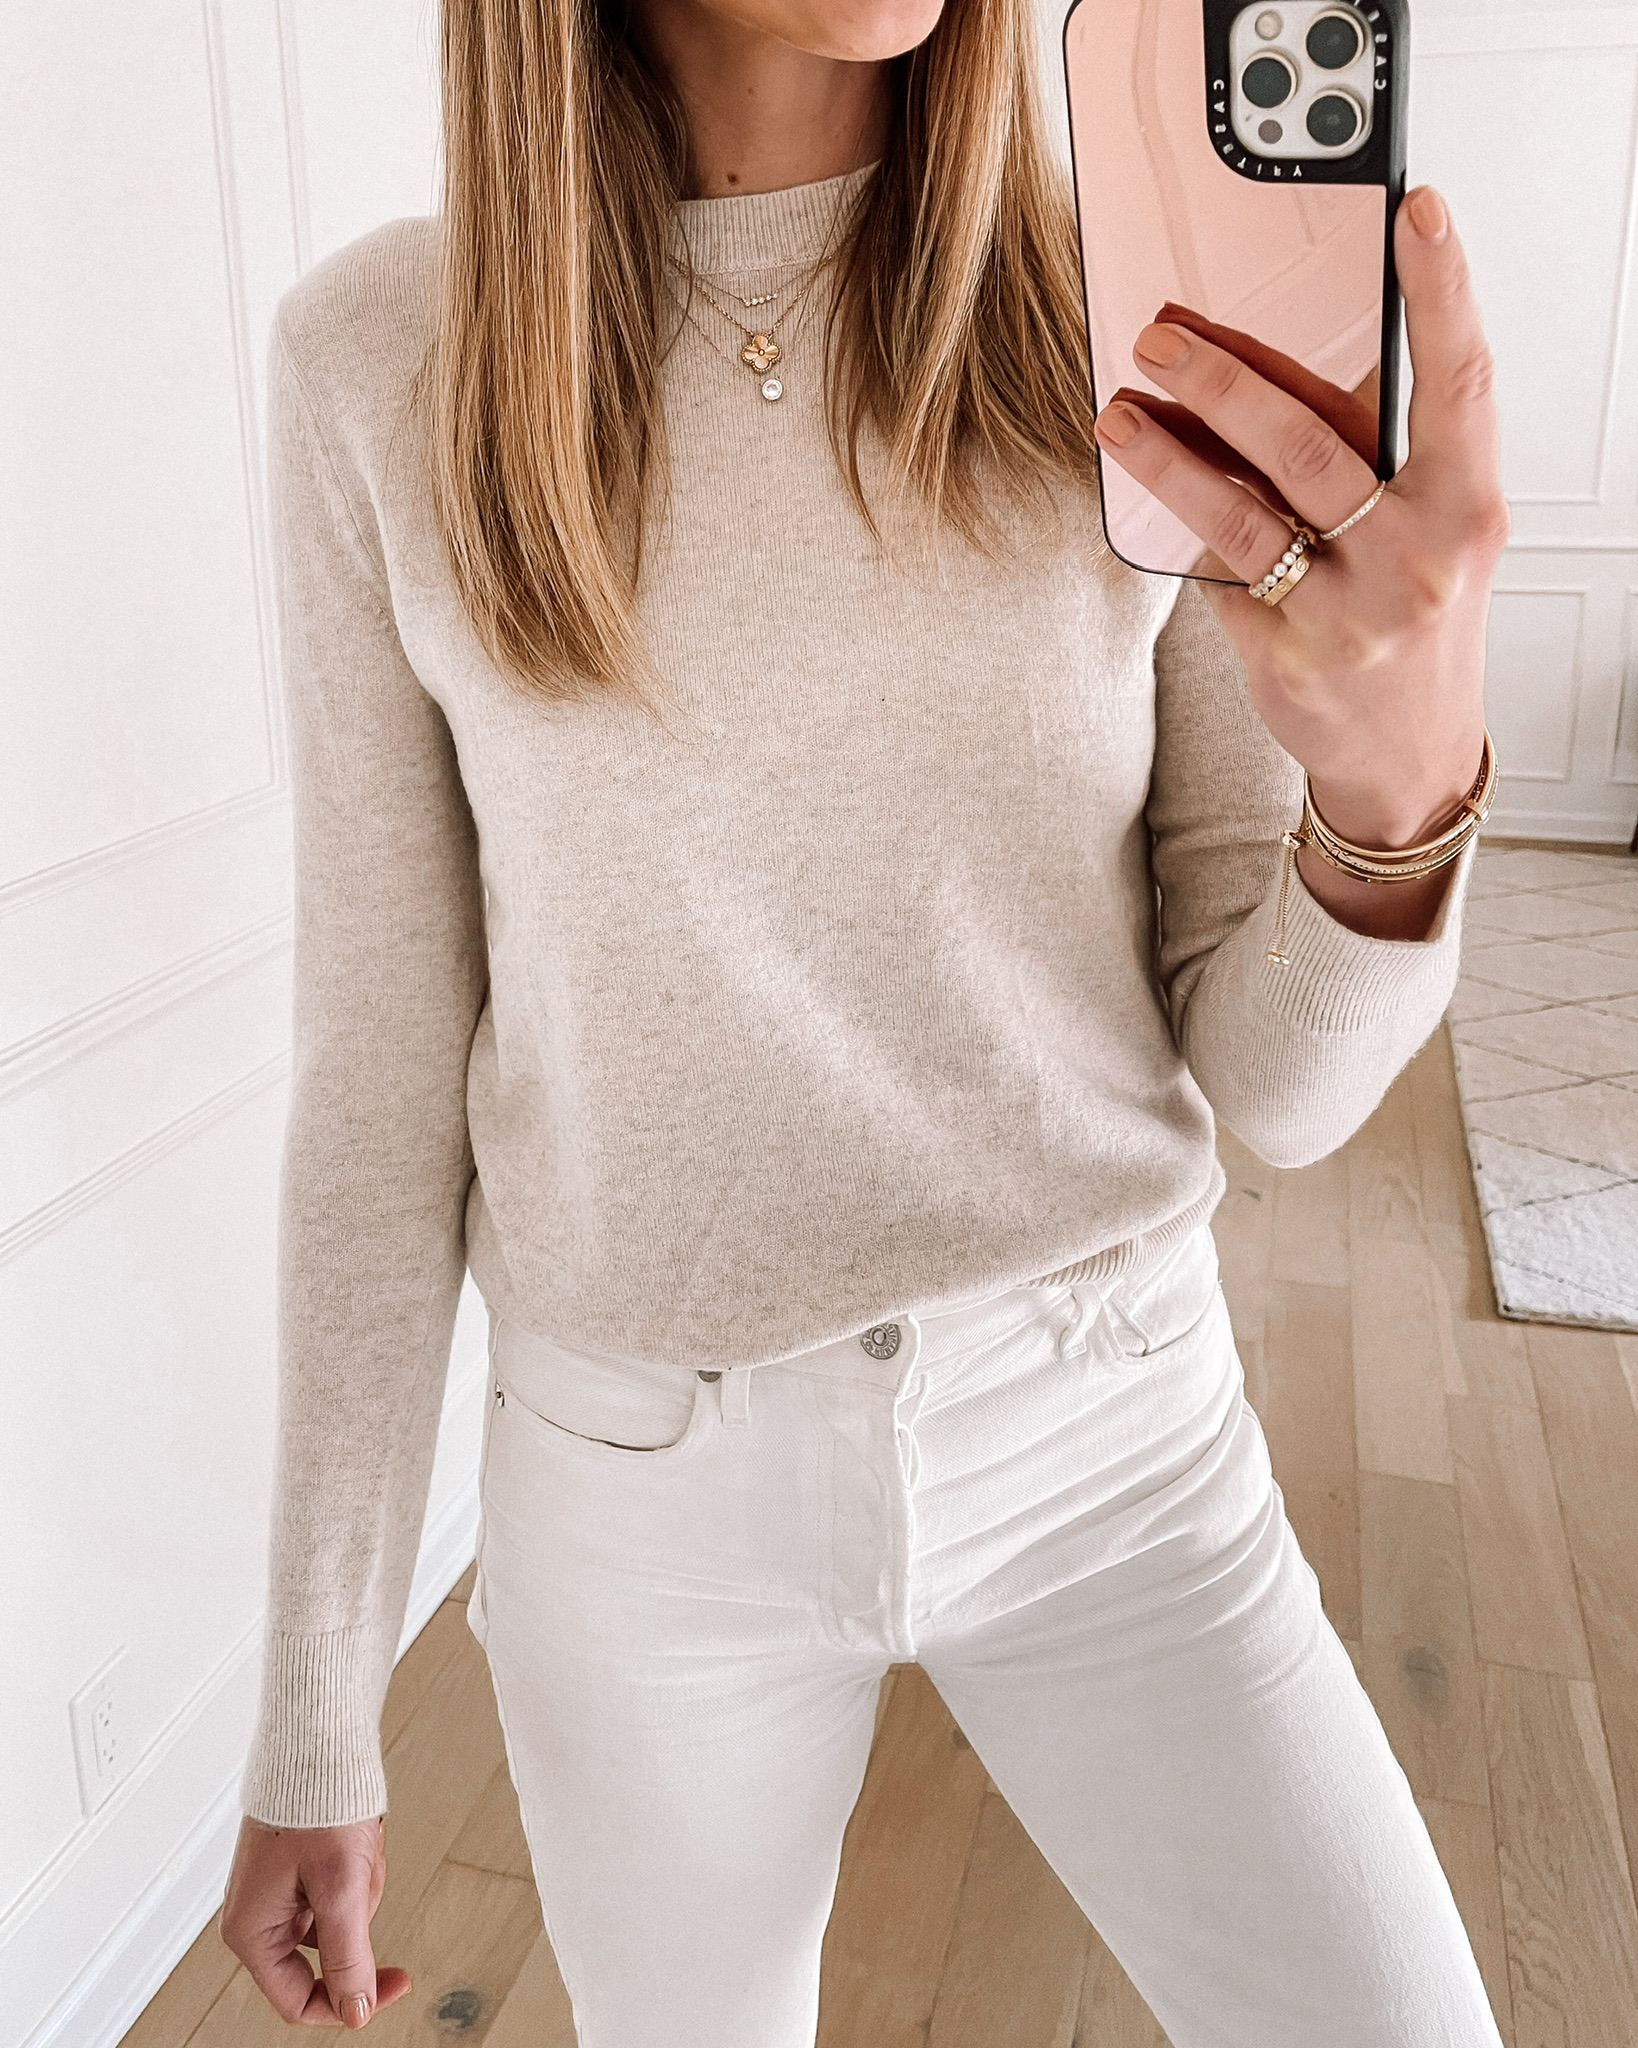 Fashion Jackson Wearing Nordstrom Anniversary Sale Ivory Cashmere Sweater White Jeans